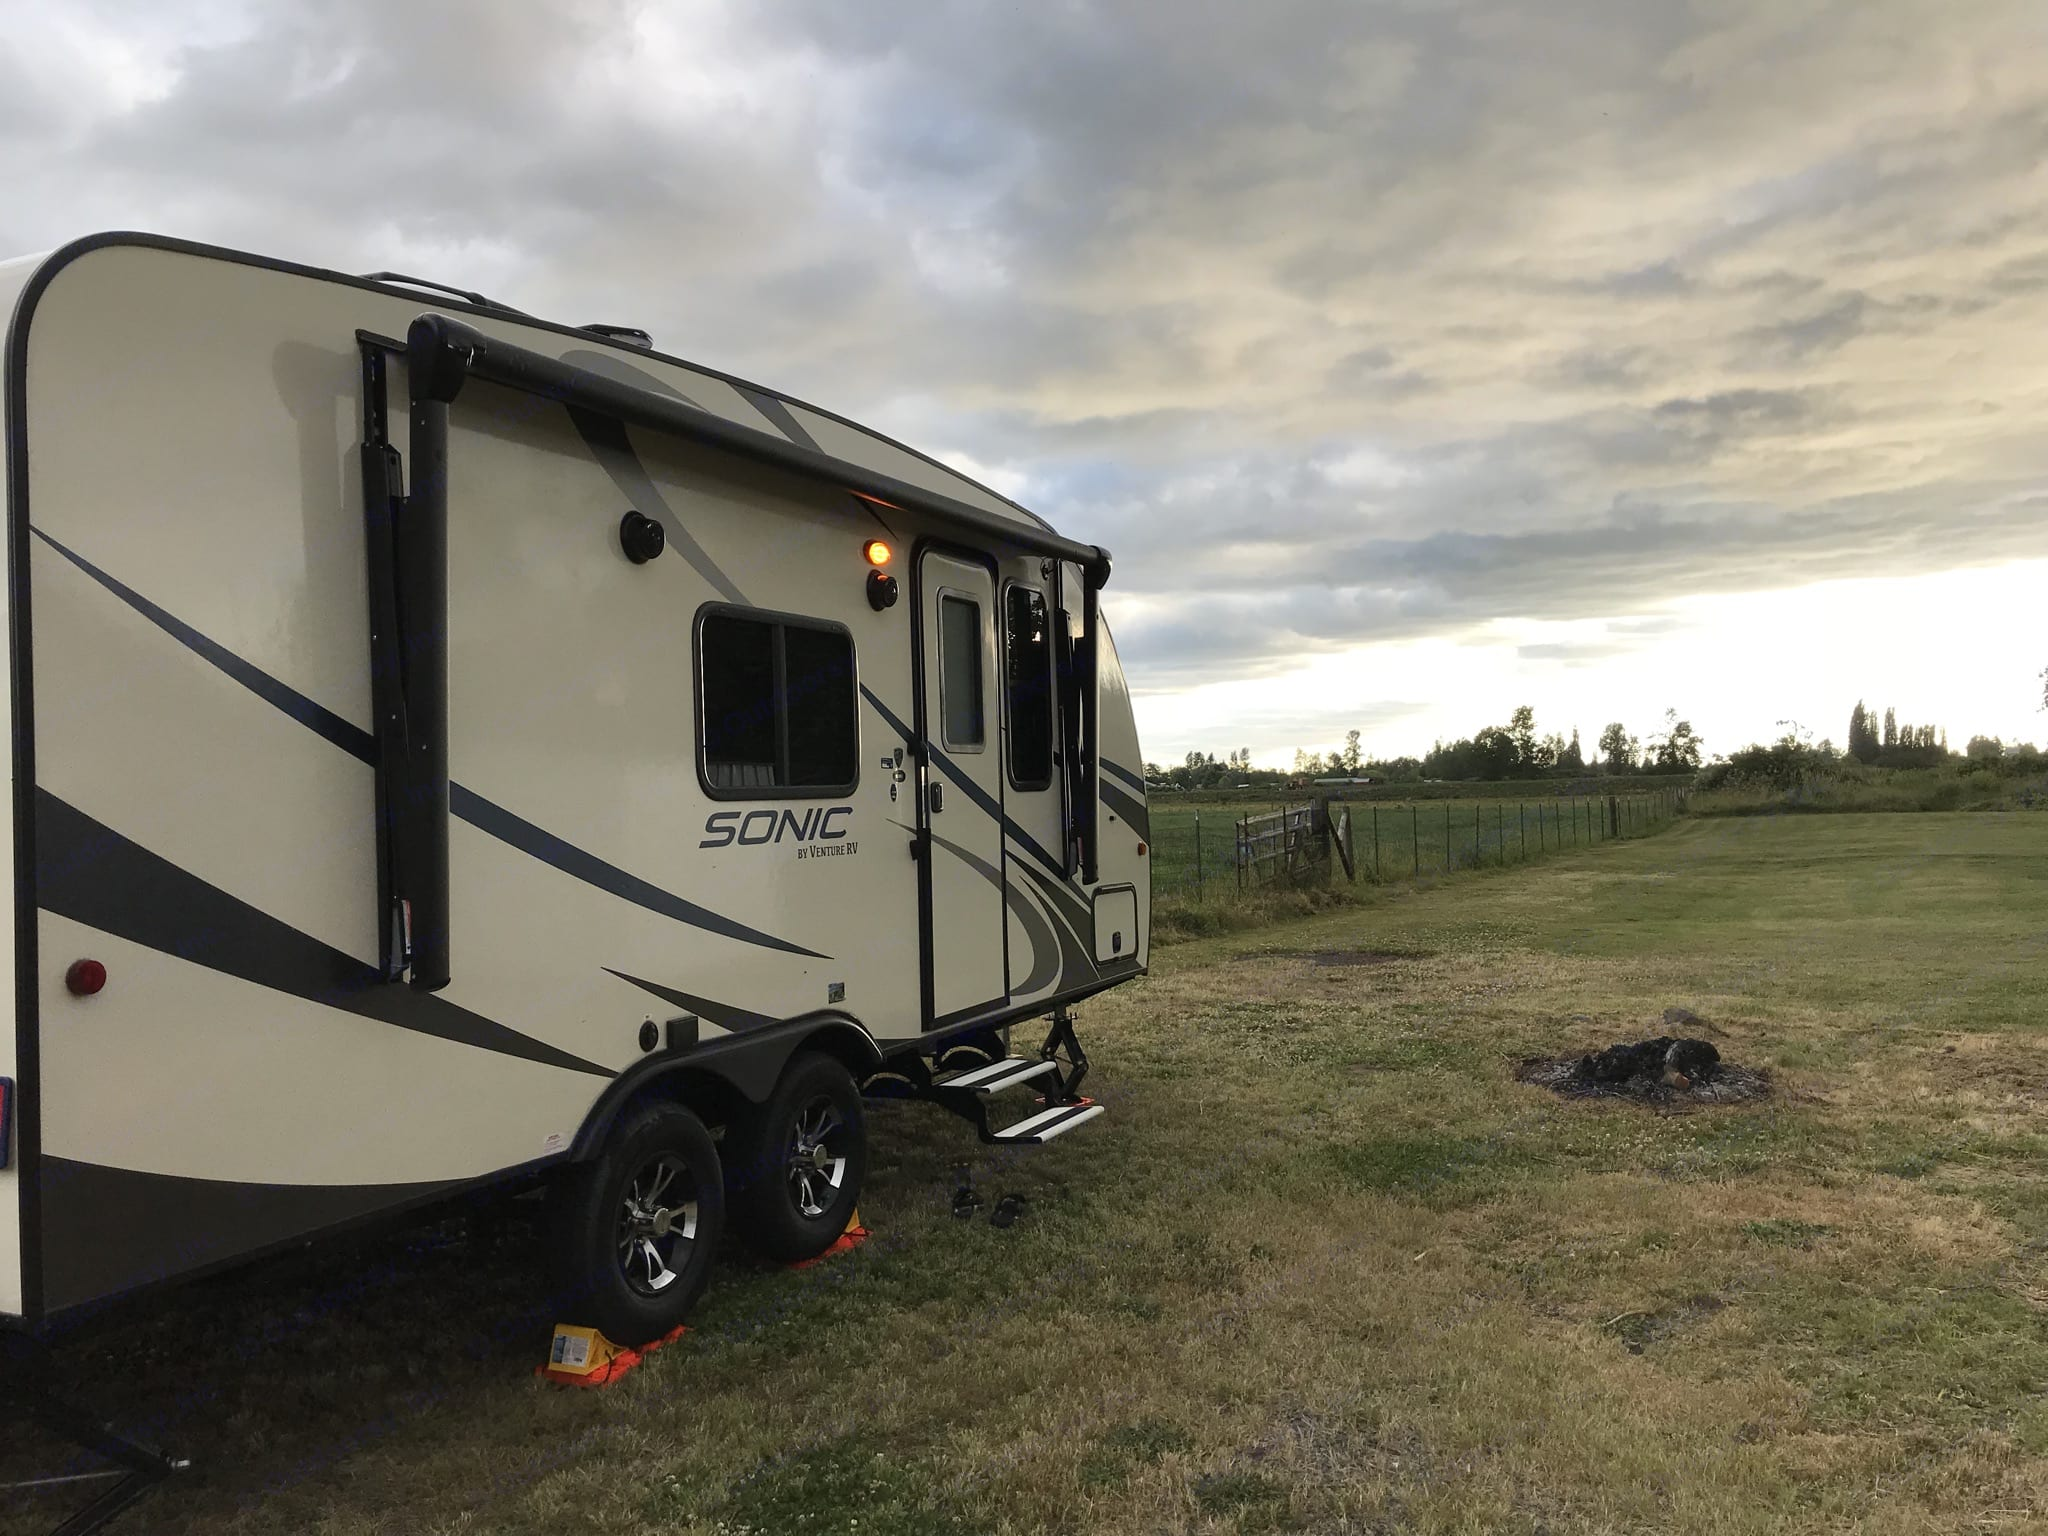 Dolly the Trailer features an electric awning with LED lights.. Venture Rv Sonic 2018